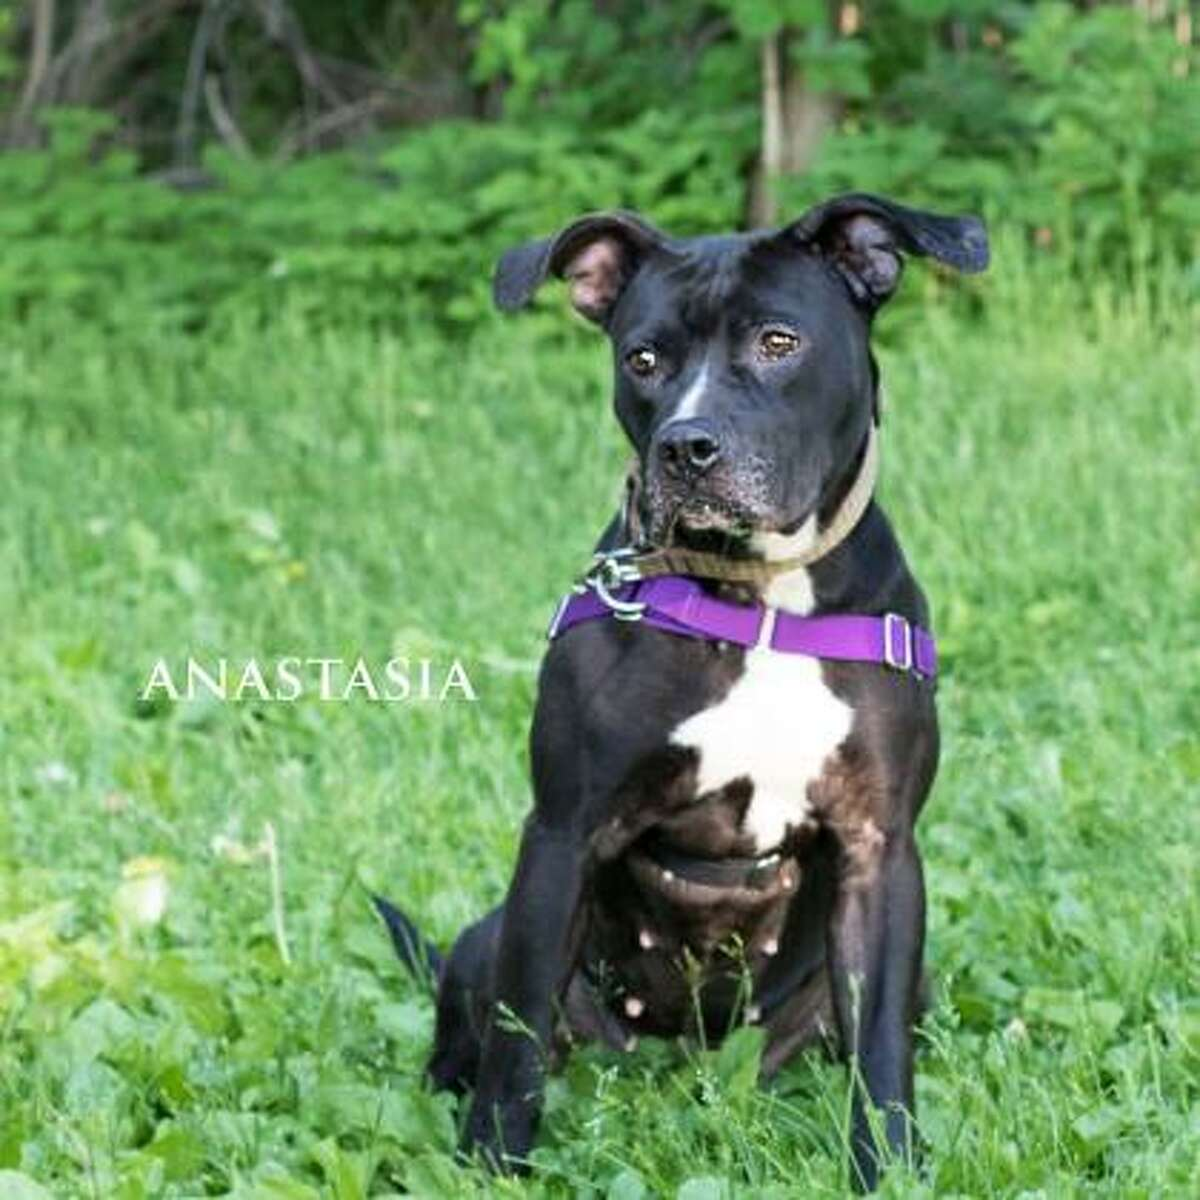 Anastasia is a 2-year-old female American pit bull terrier mix available for adoption at the Mohawk Hudson Humane Society in Menands. Here is her biography: